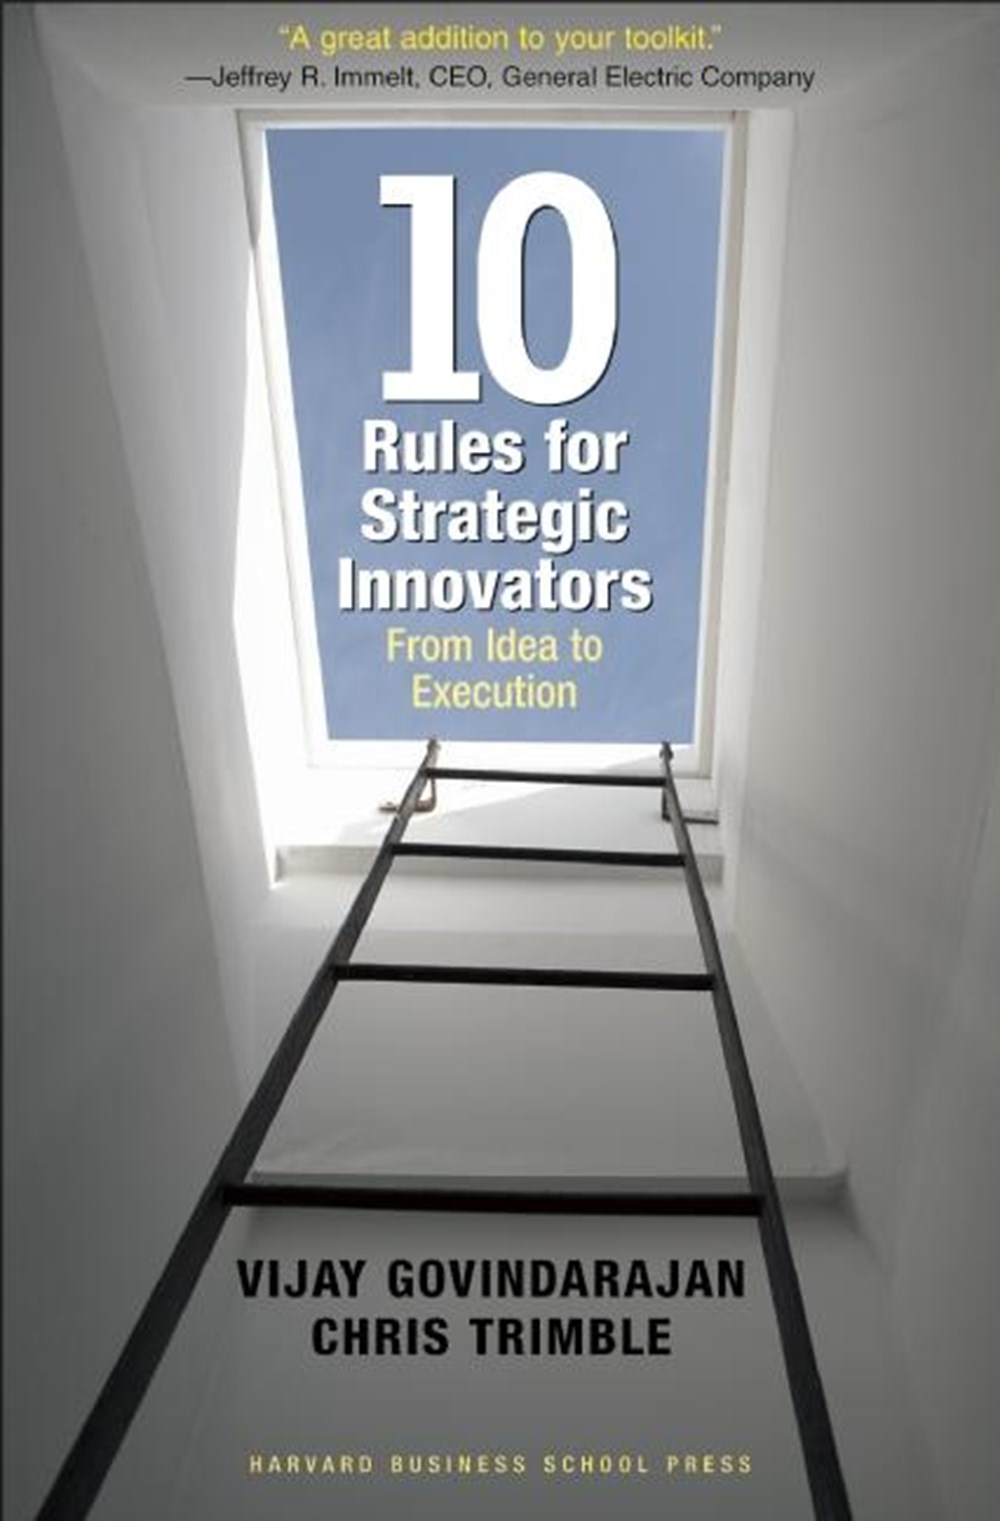 Ten Rules for Strategic Innovators From Idea to Execution